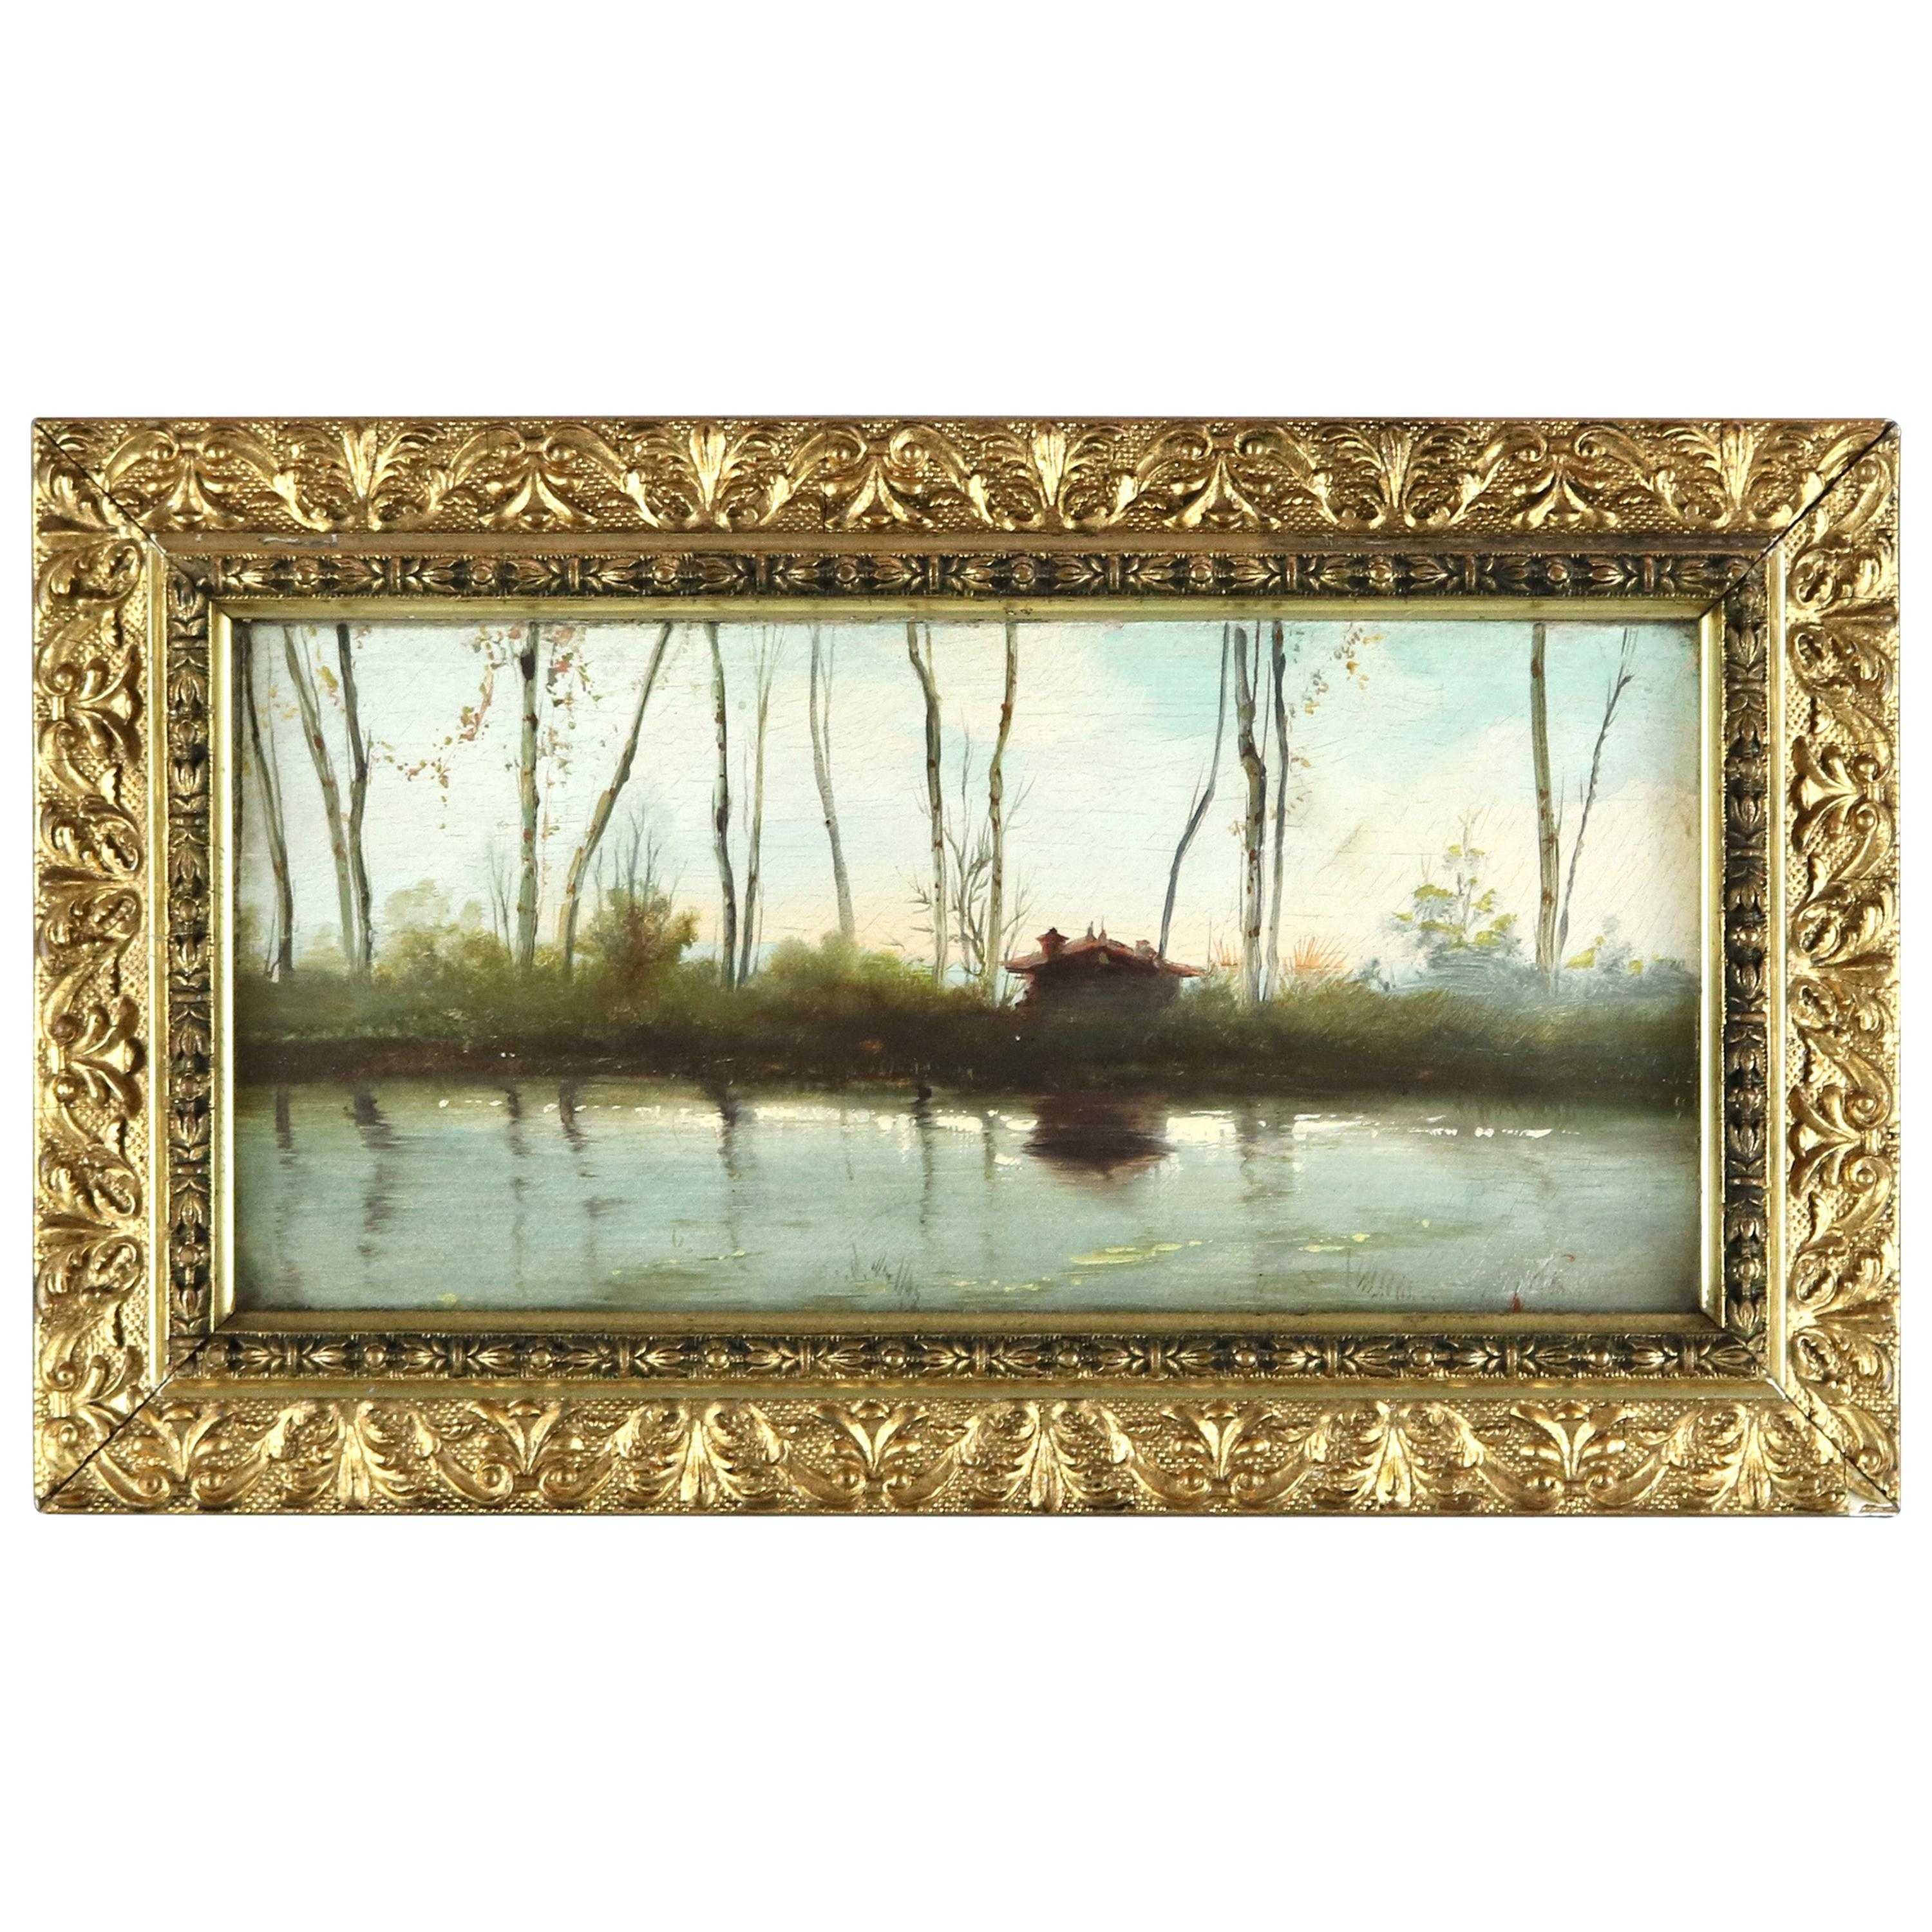 Antique River Valley Scene with Cabin, Oil Painting on Hard Board, 19th Century